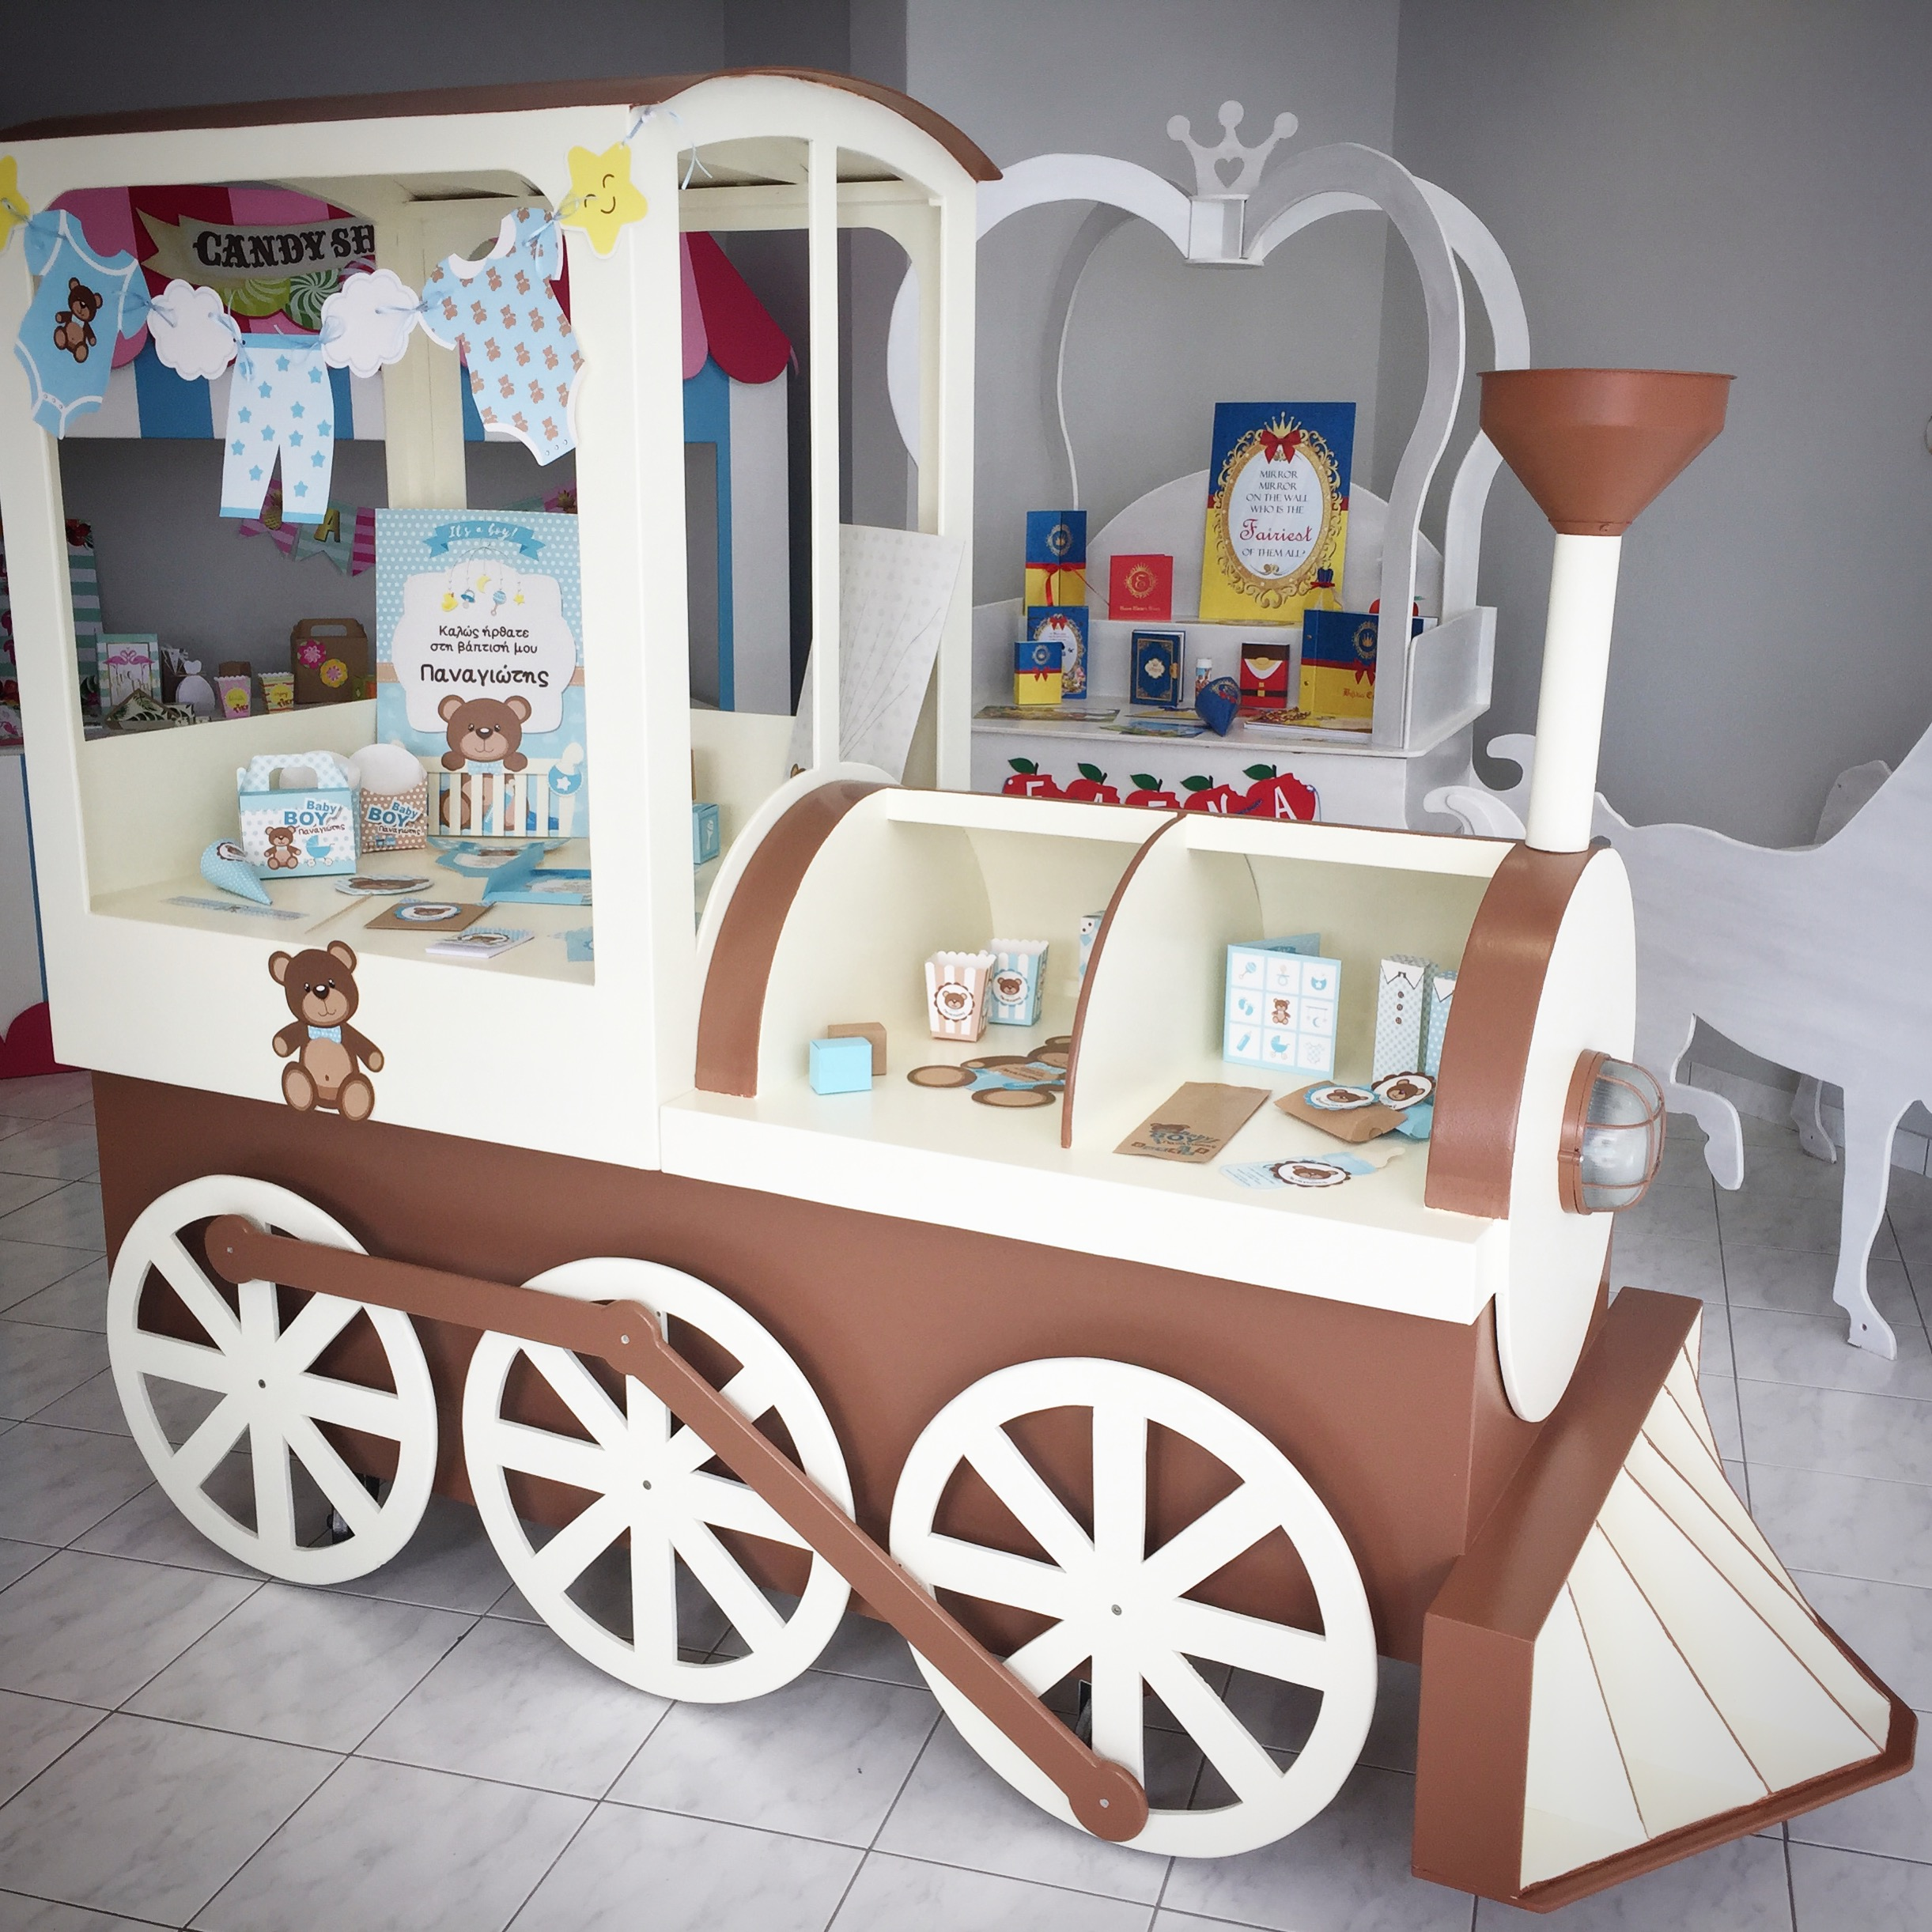 Steam Train candy cart